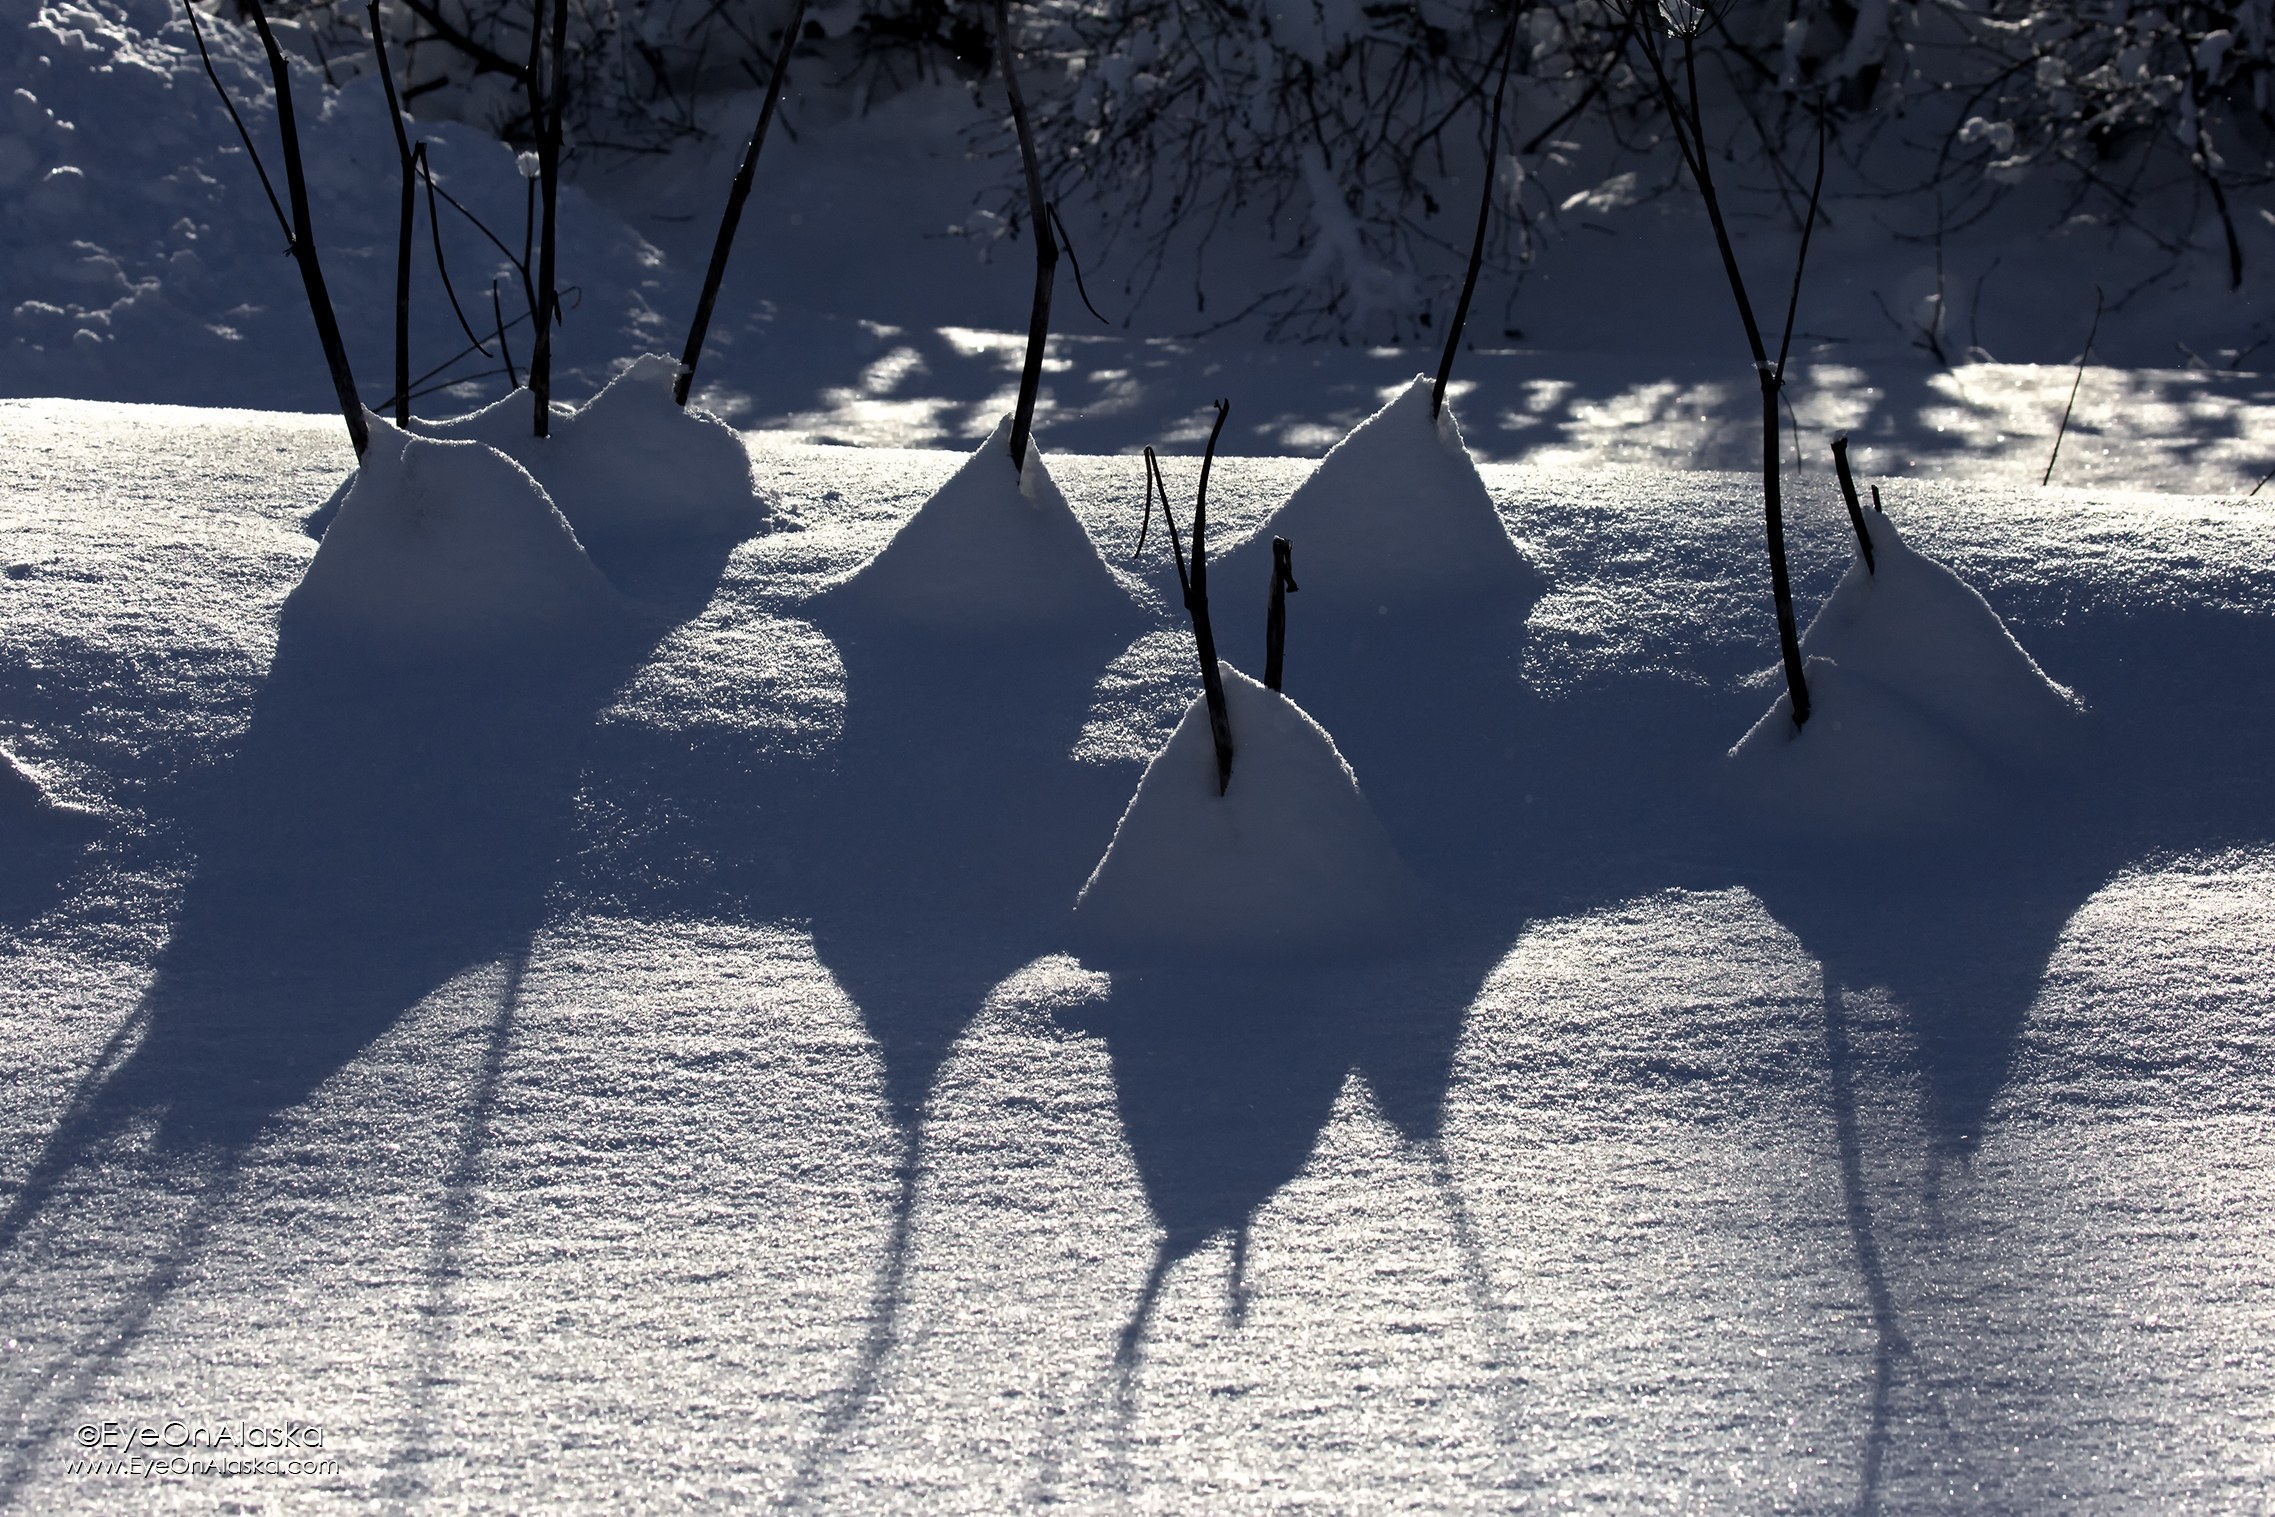 Today was all about sun and shadows. There was a lot more snow in Portage Valley than here in Bear Valley.